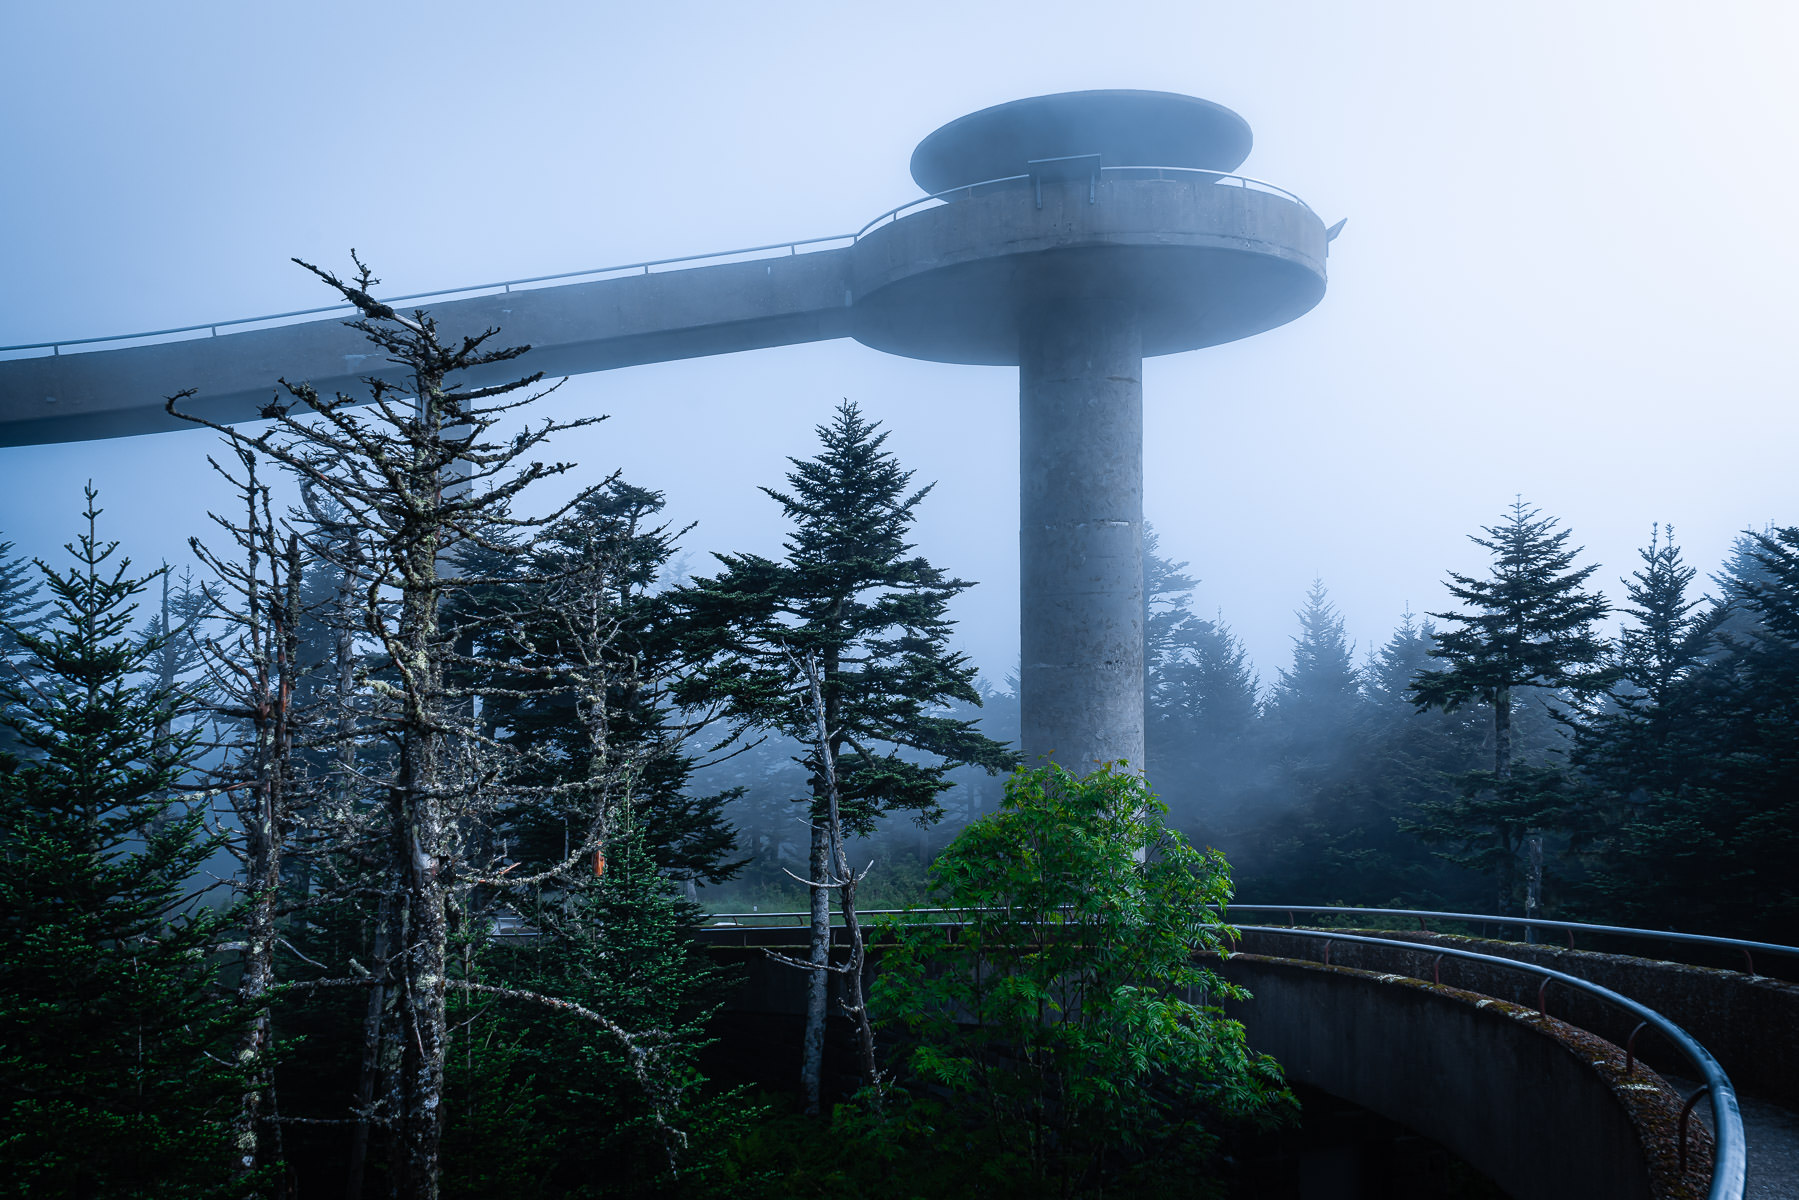 The observation tower at Clingmans Dome rises through the early-morning Great Smoky Mountains National Park fog.